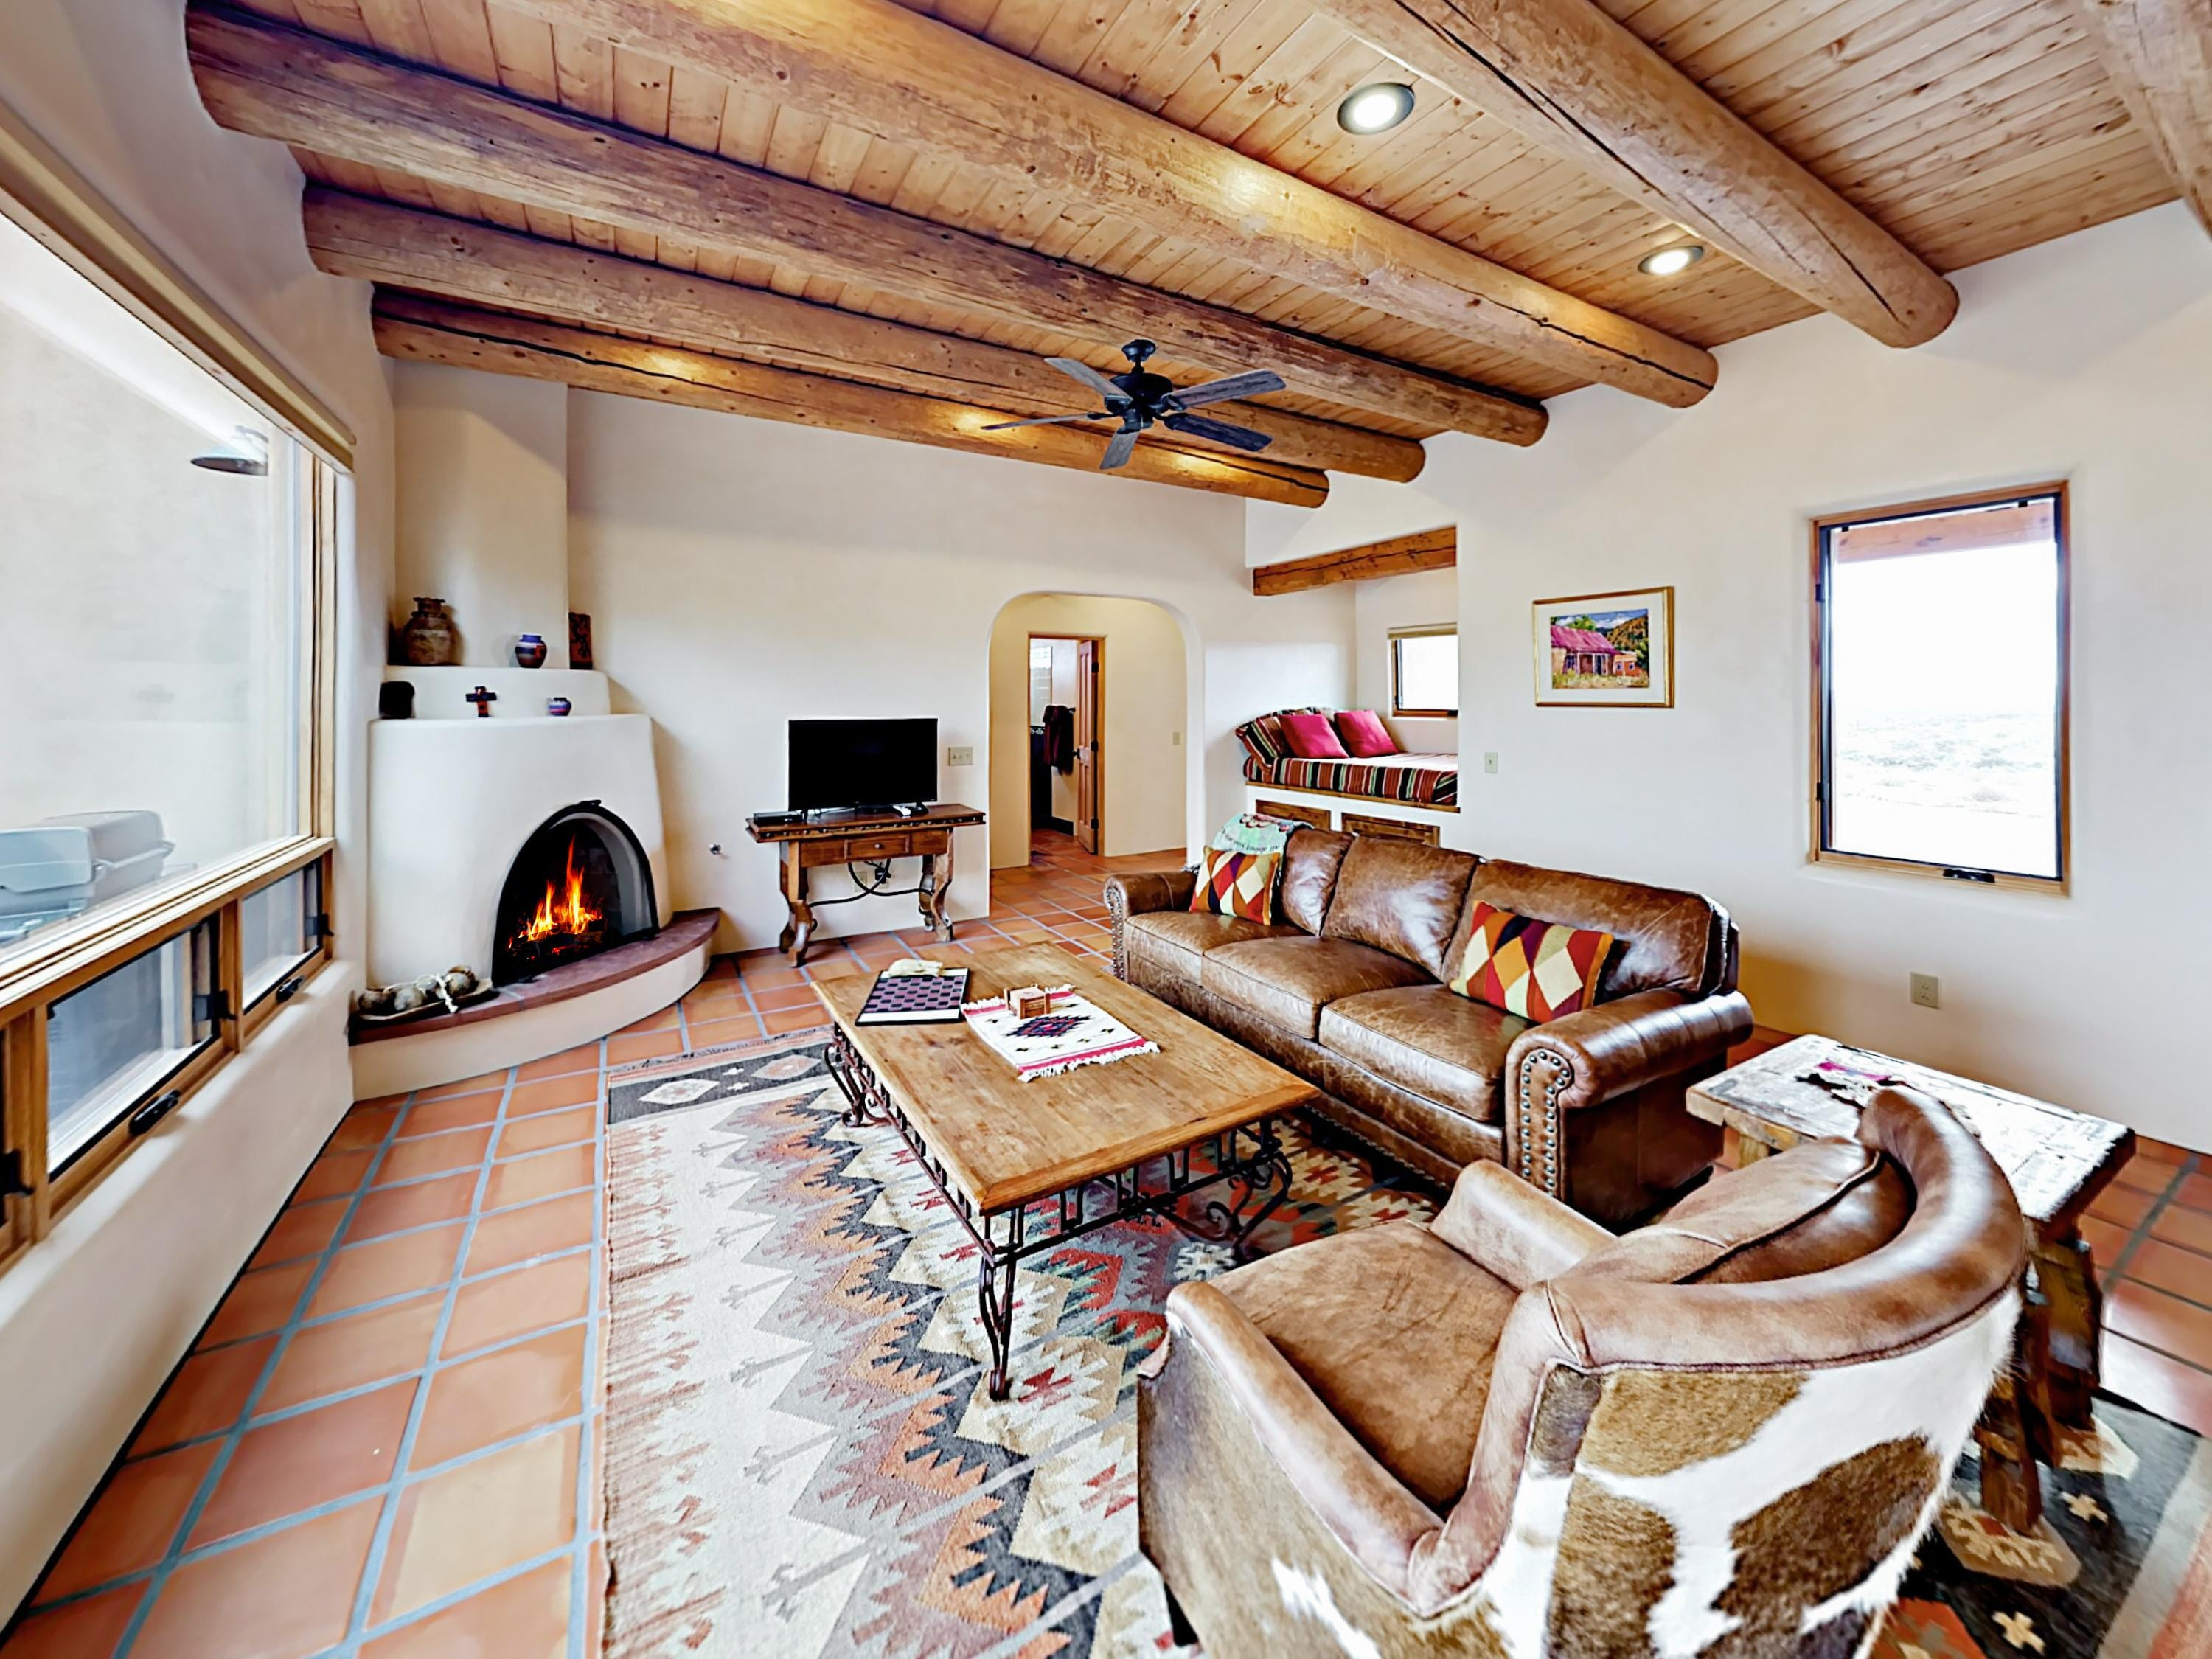 Open beam ceilings complement tile floors and adobe walls in the airy living room.